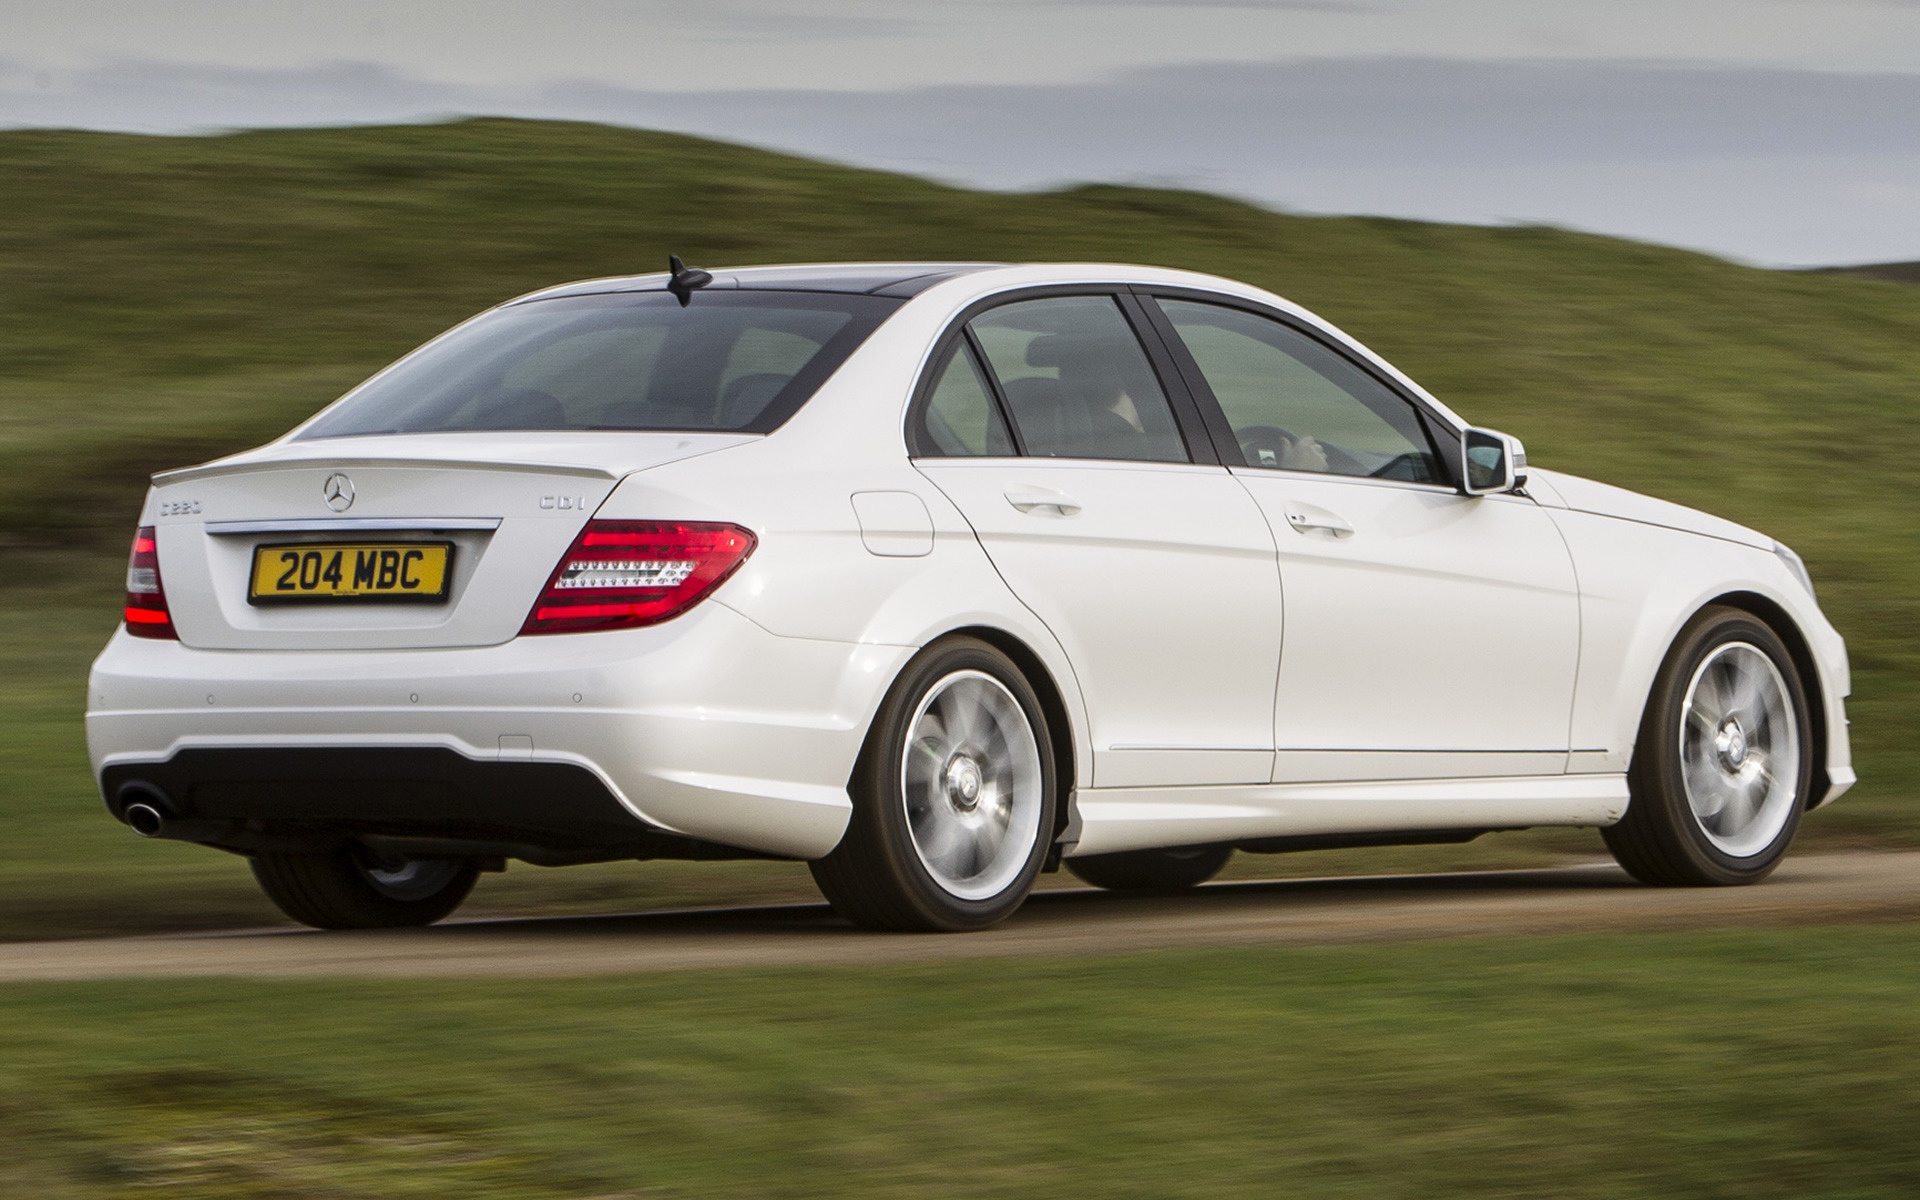 Mercedes benz c class amg sport edition 2013 uk for Mercedes benz c class sports edition